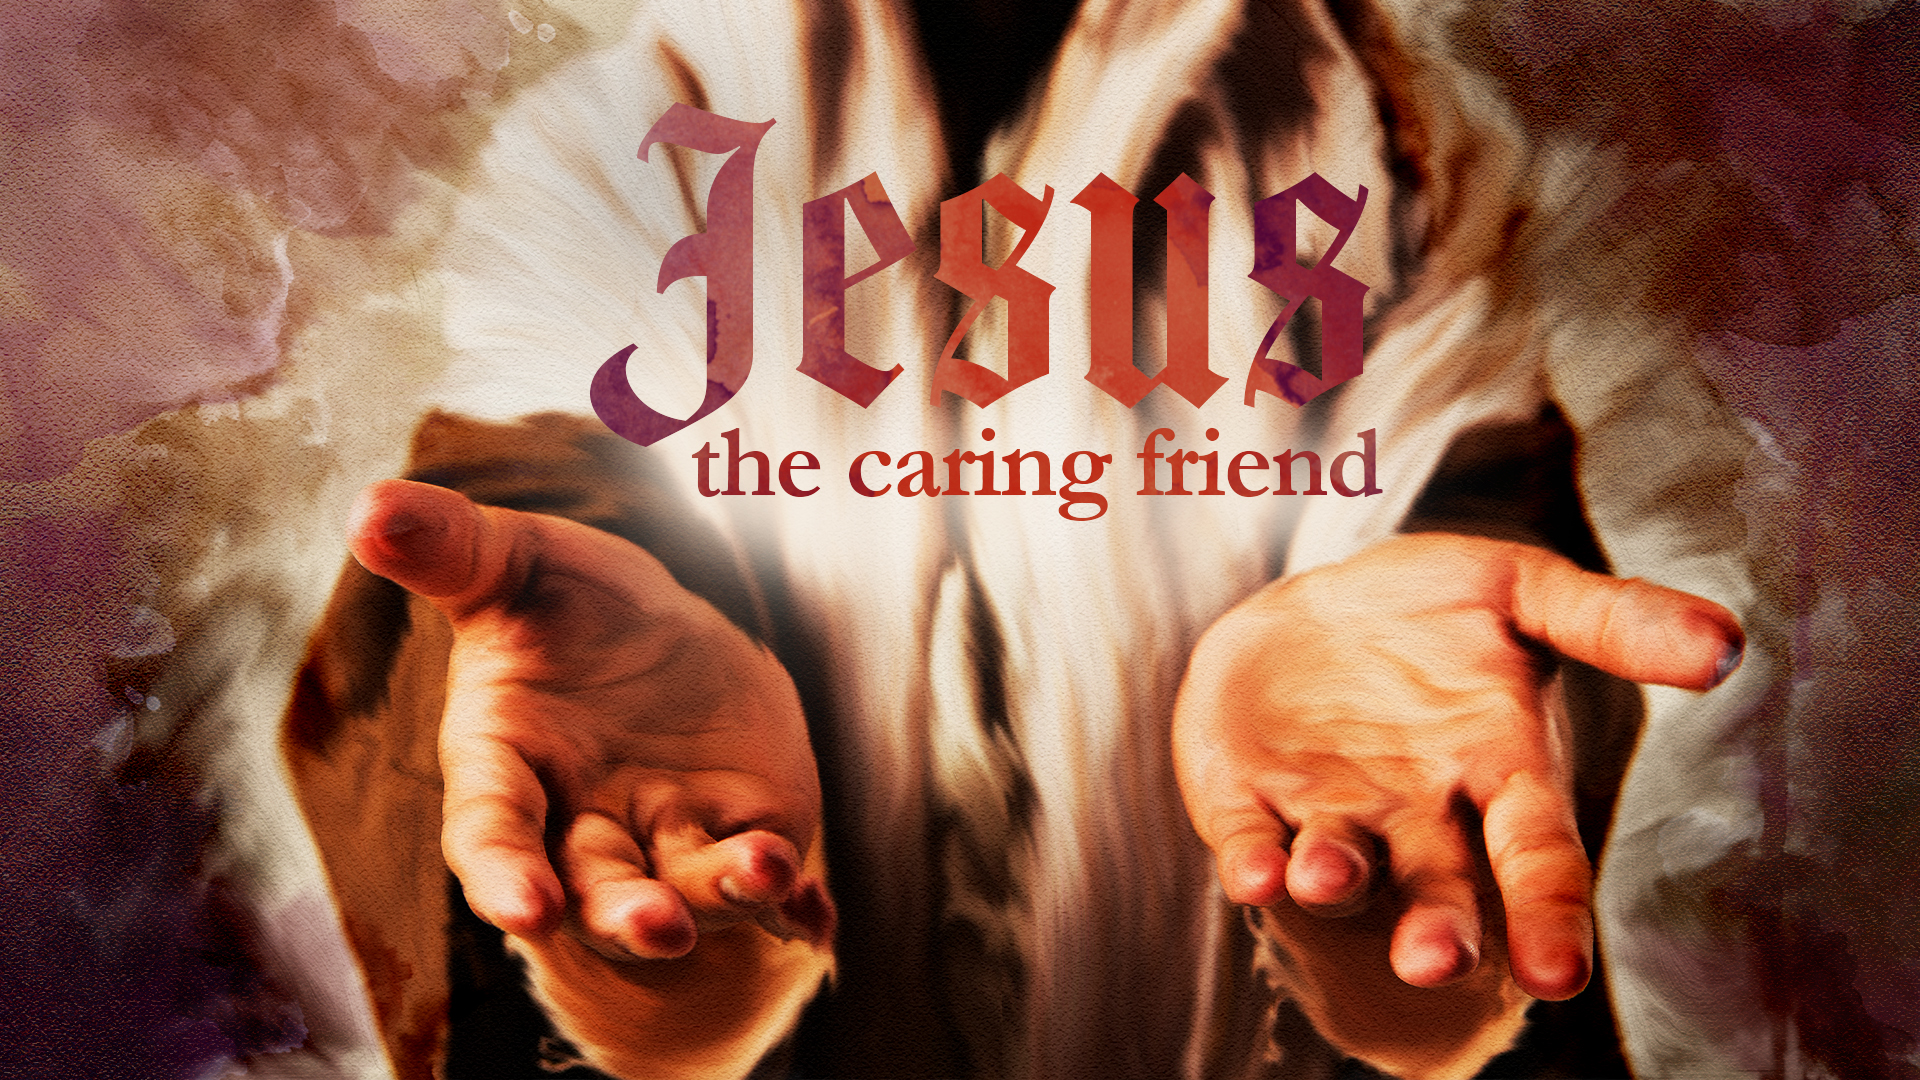 Jesus: The Caring Friend